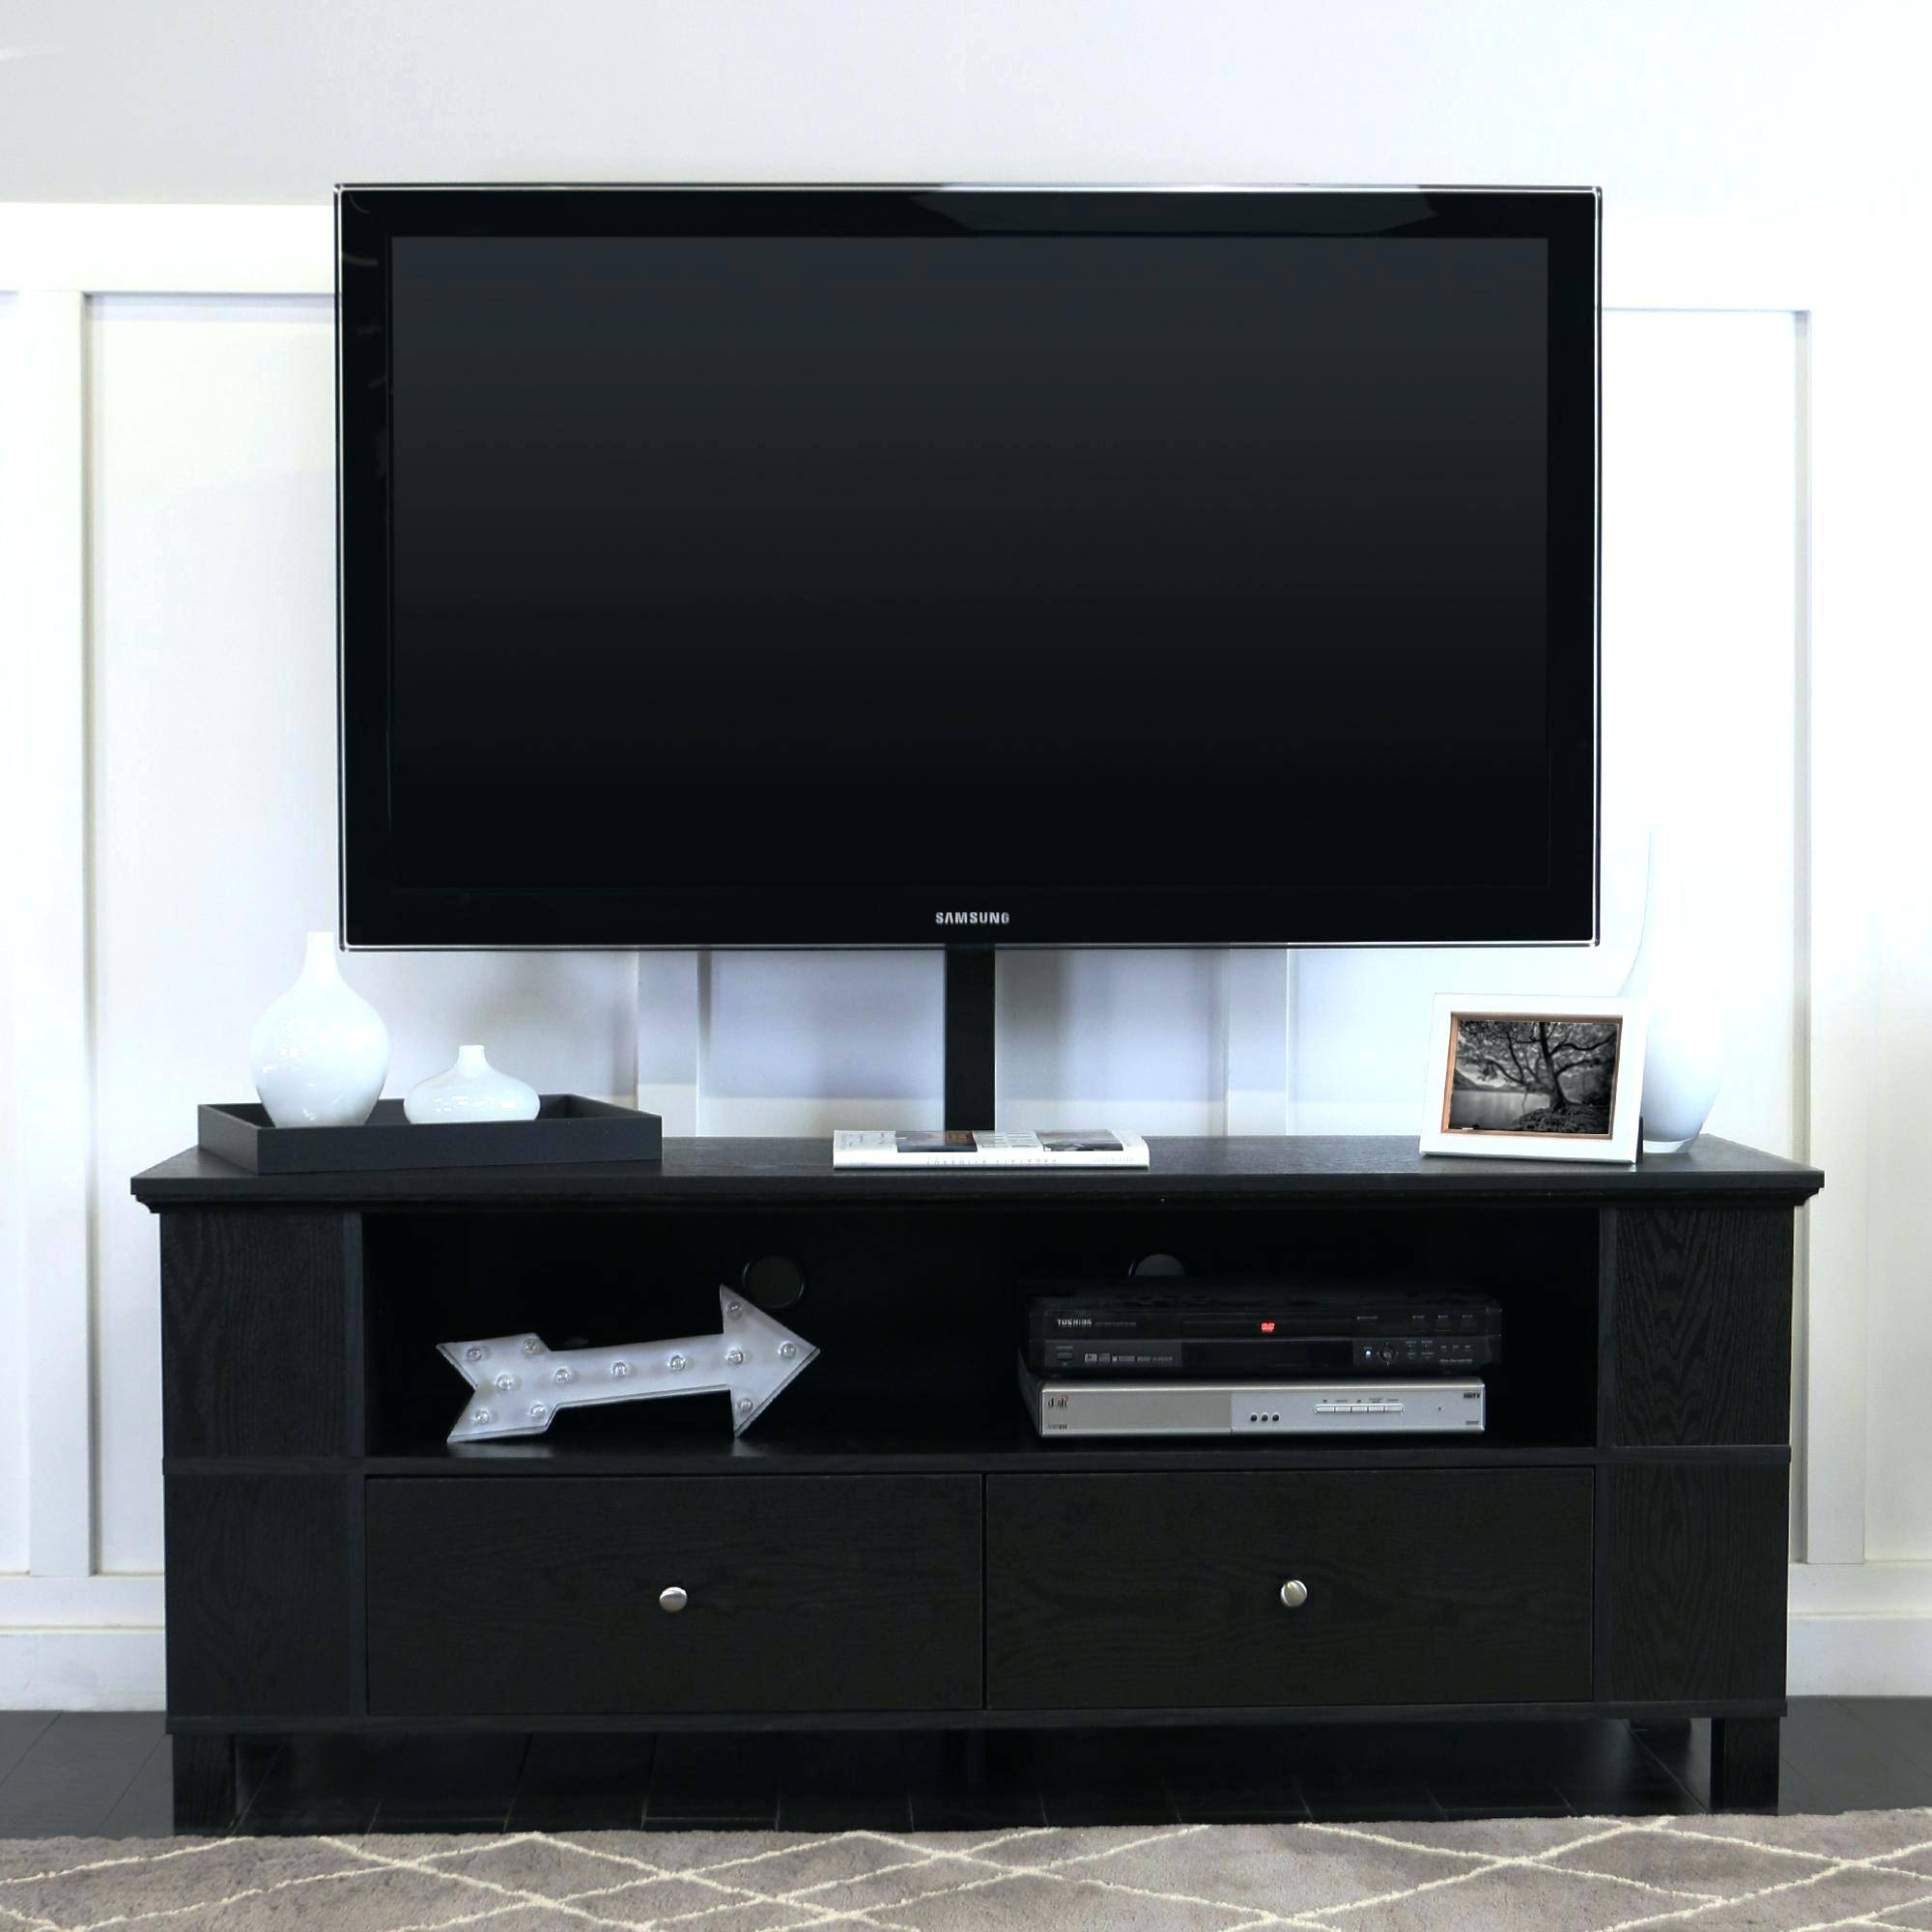 Tv Stand : Bello Black Corner Tv Stand For Tvs Up To 50 Cozy Black regarding Techlink Bench Corner Tv Stands (Image 8 of 15)